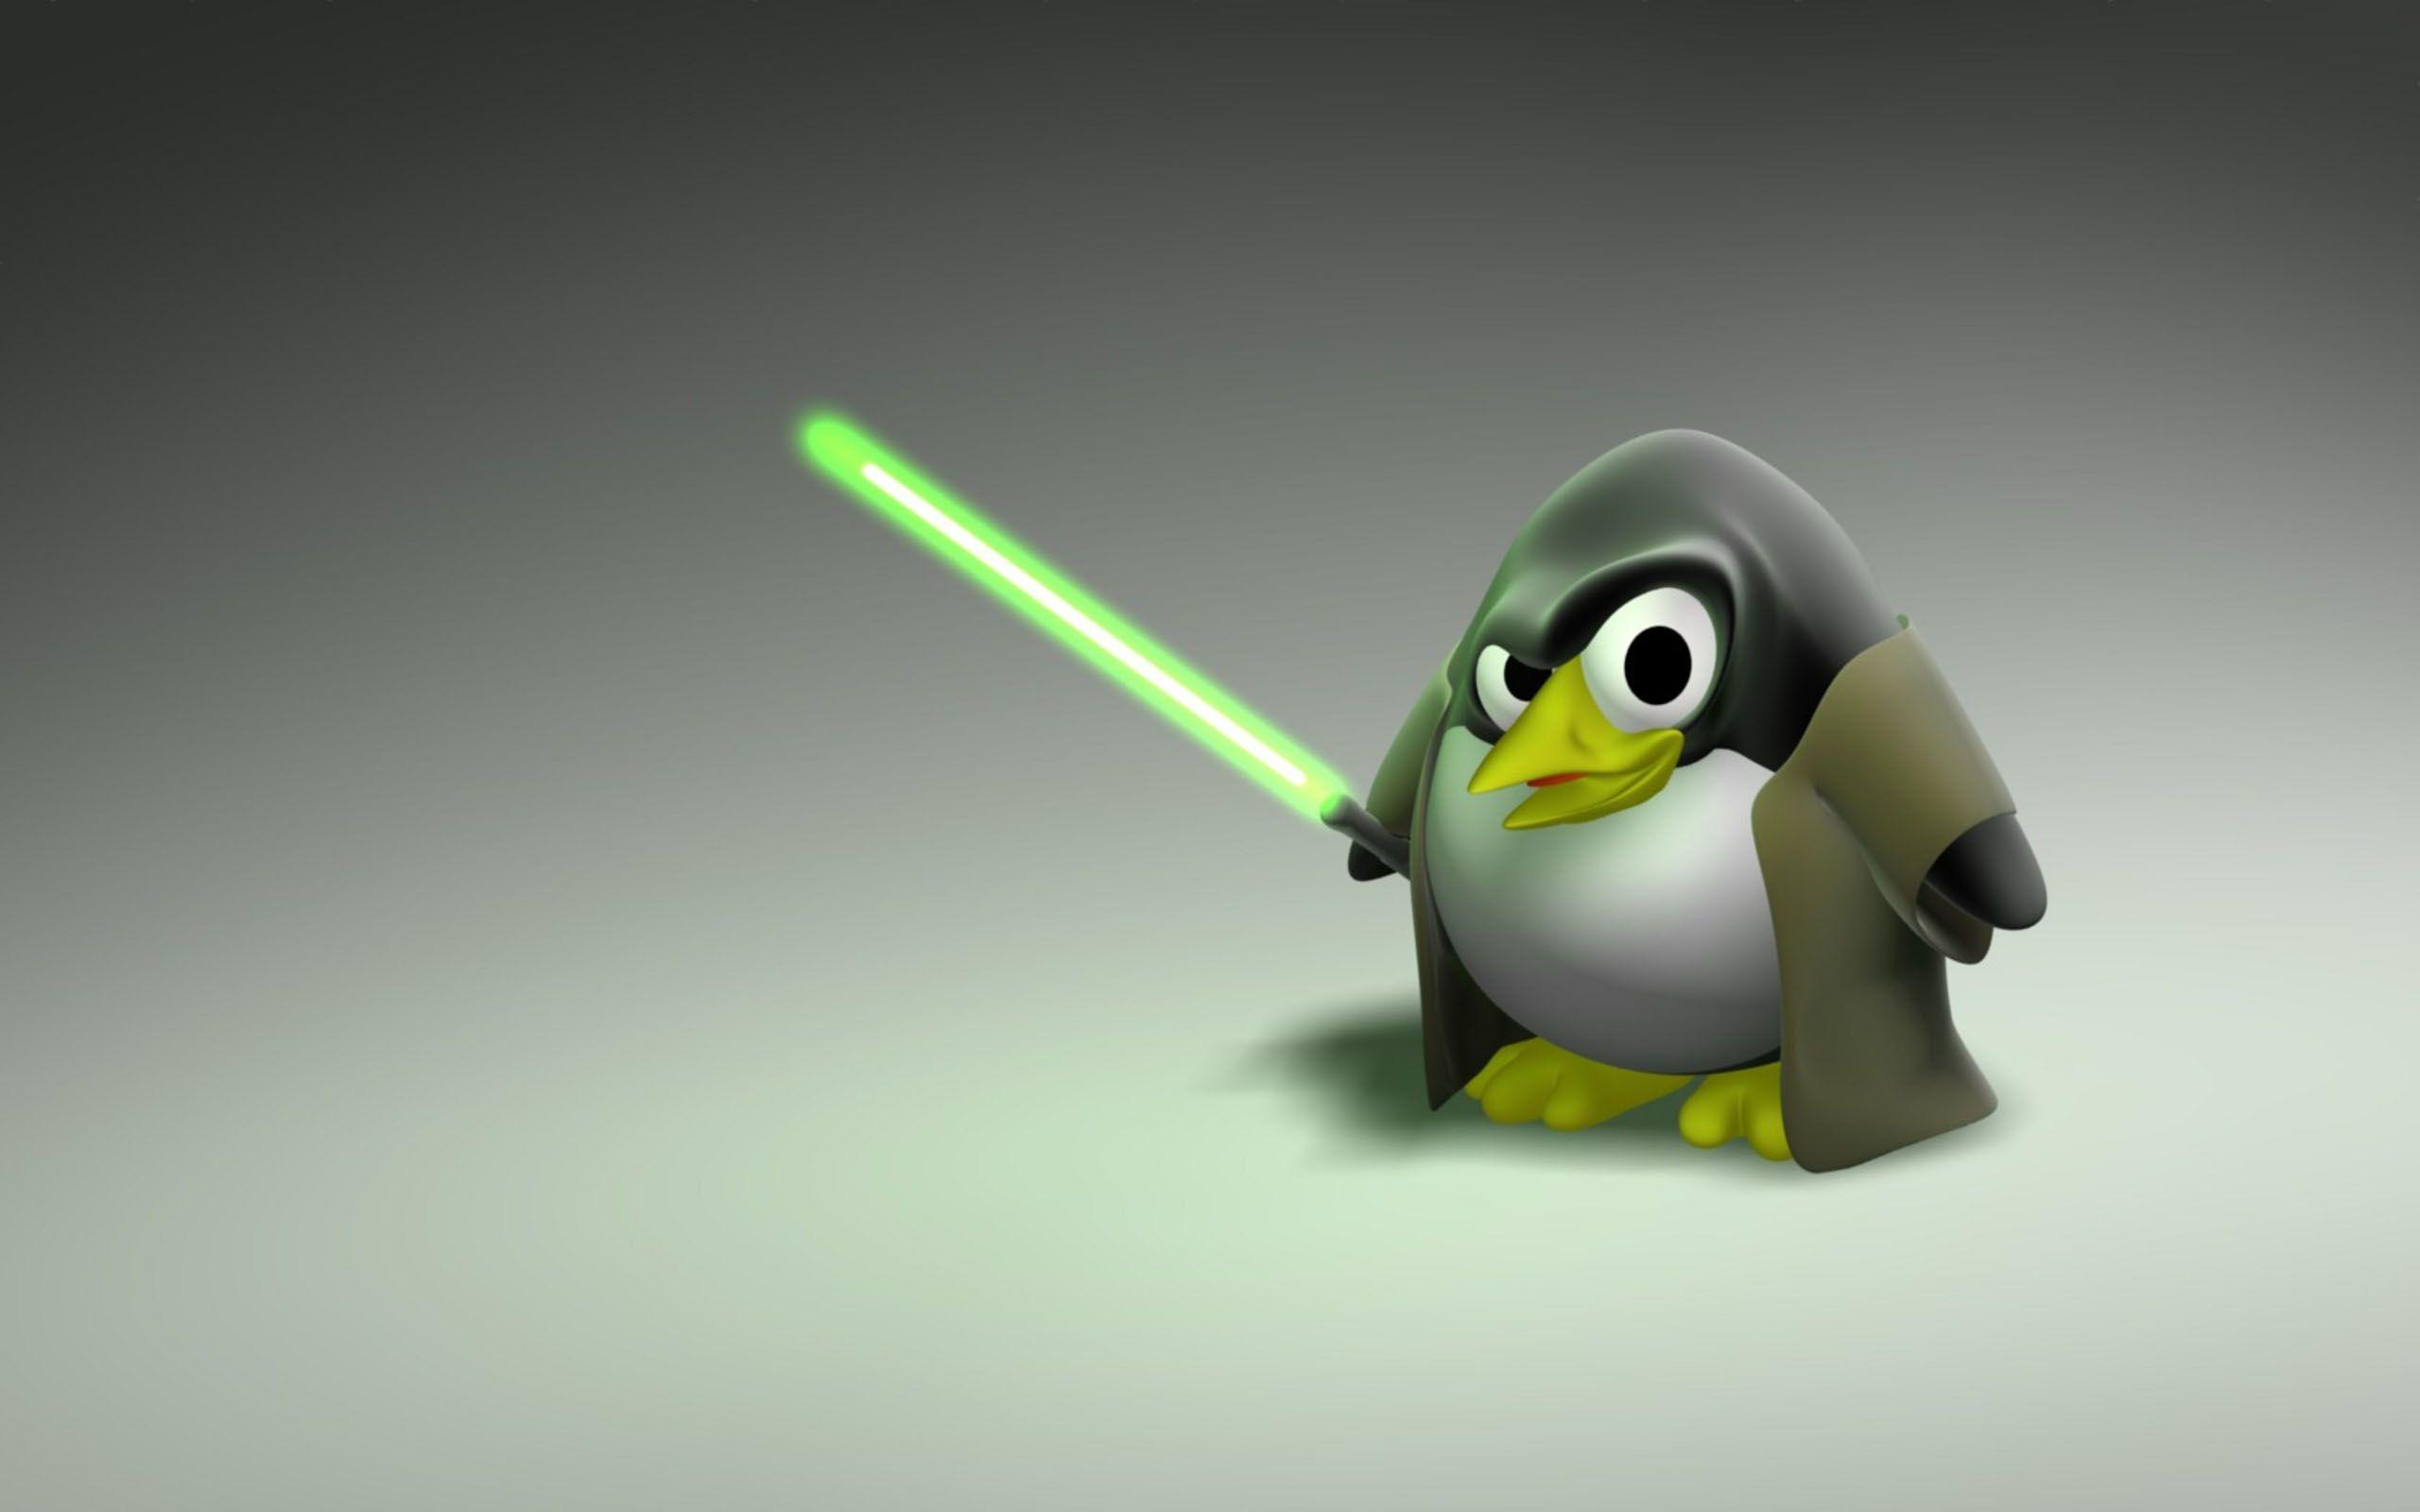 Linux Wallpapers - Full HD wallpaper search